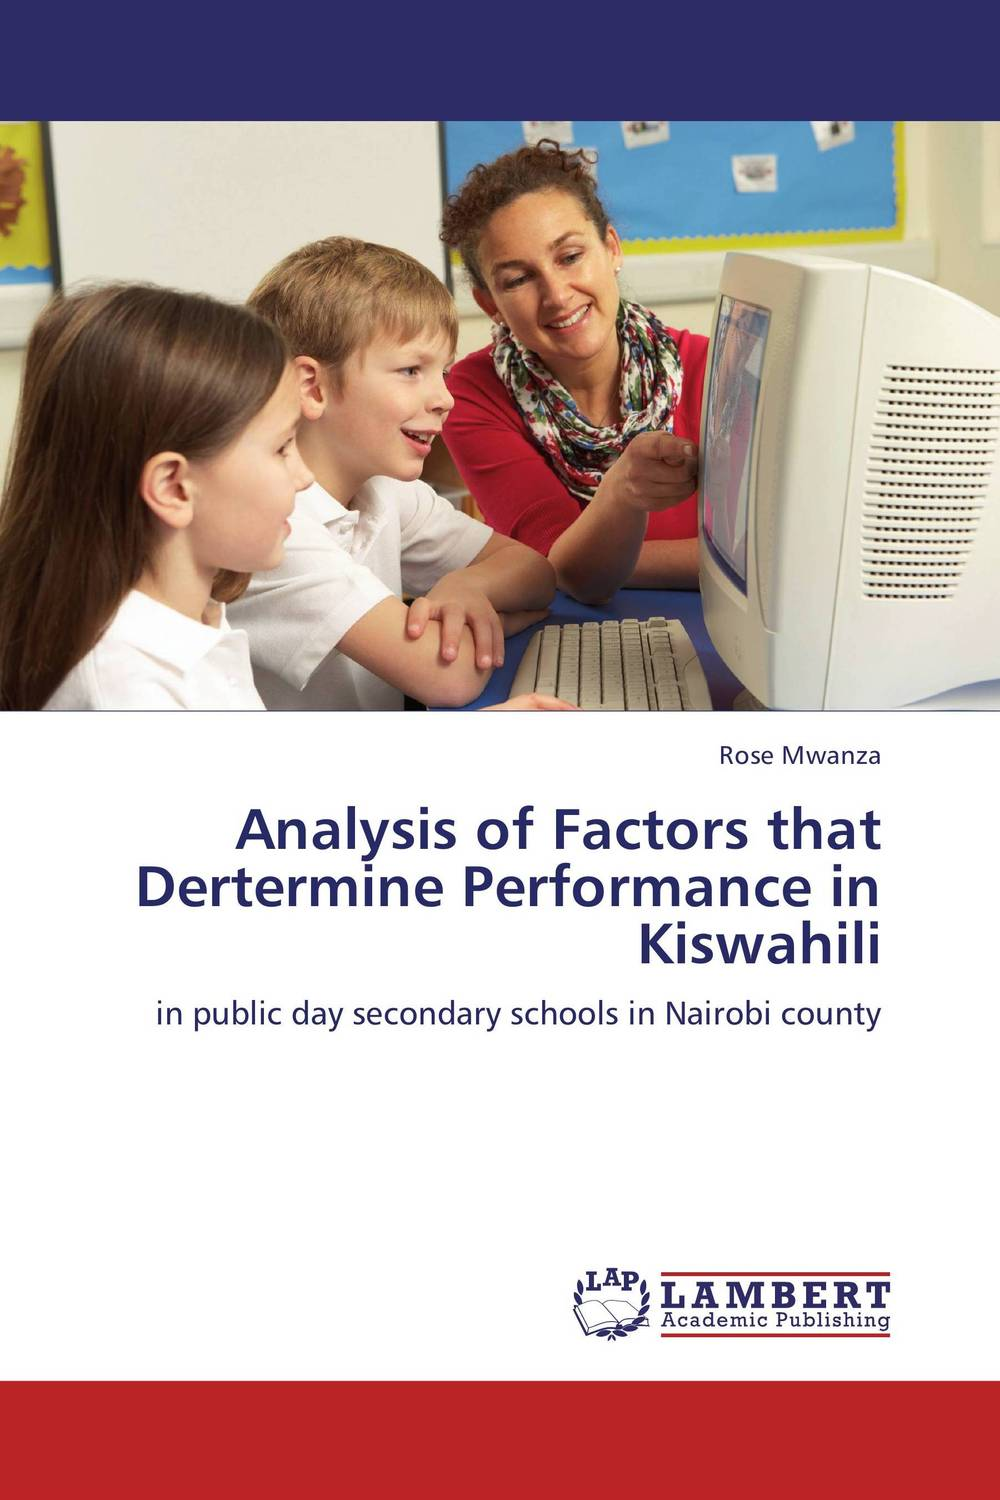 Analysis of Factors that Dertermine Performance in Kiswahili factors influencing girls performance in tanzanian community schools